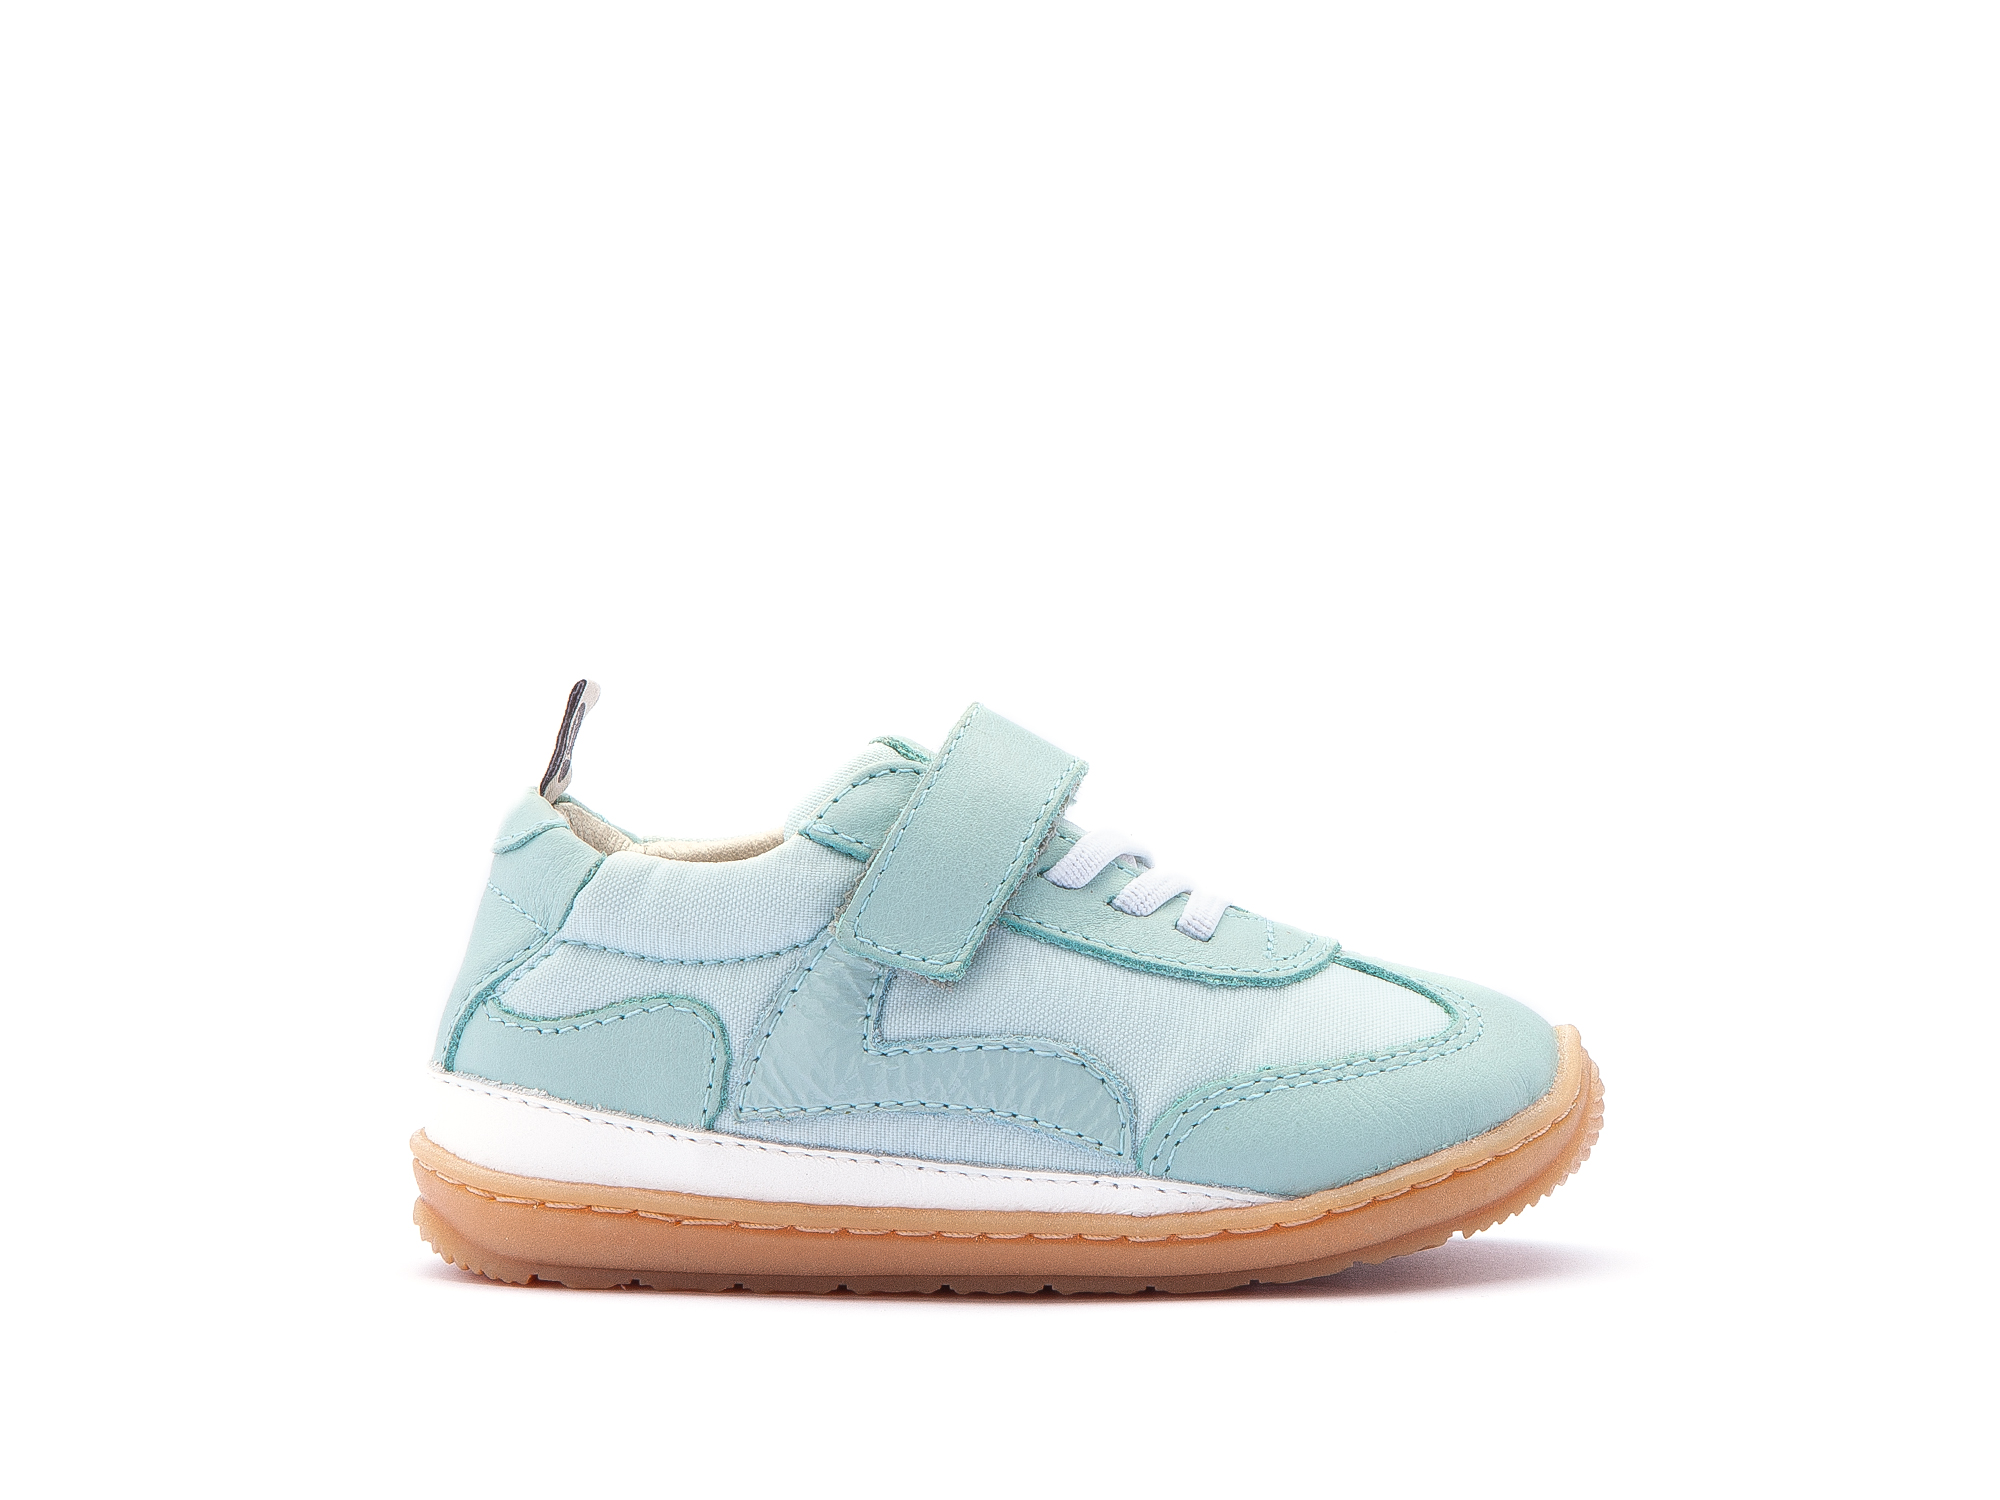 Tênis Starty Light Blue Nylon/ Aquamarine Baby 0 à 2 anos - 1